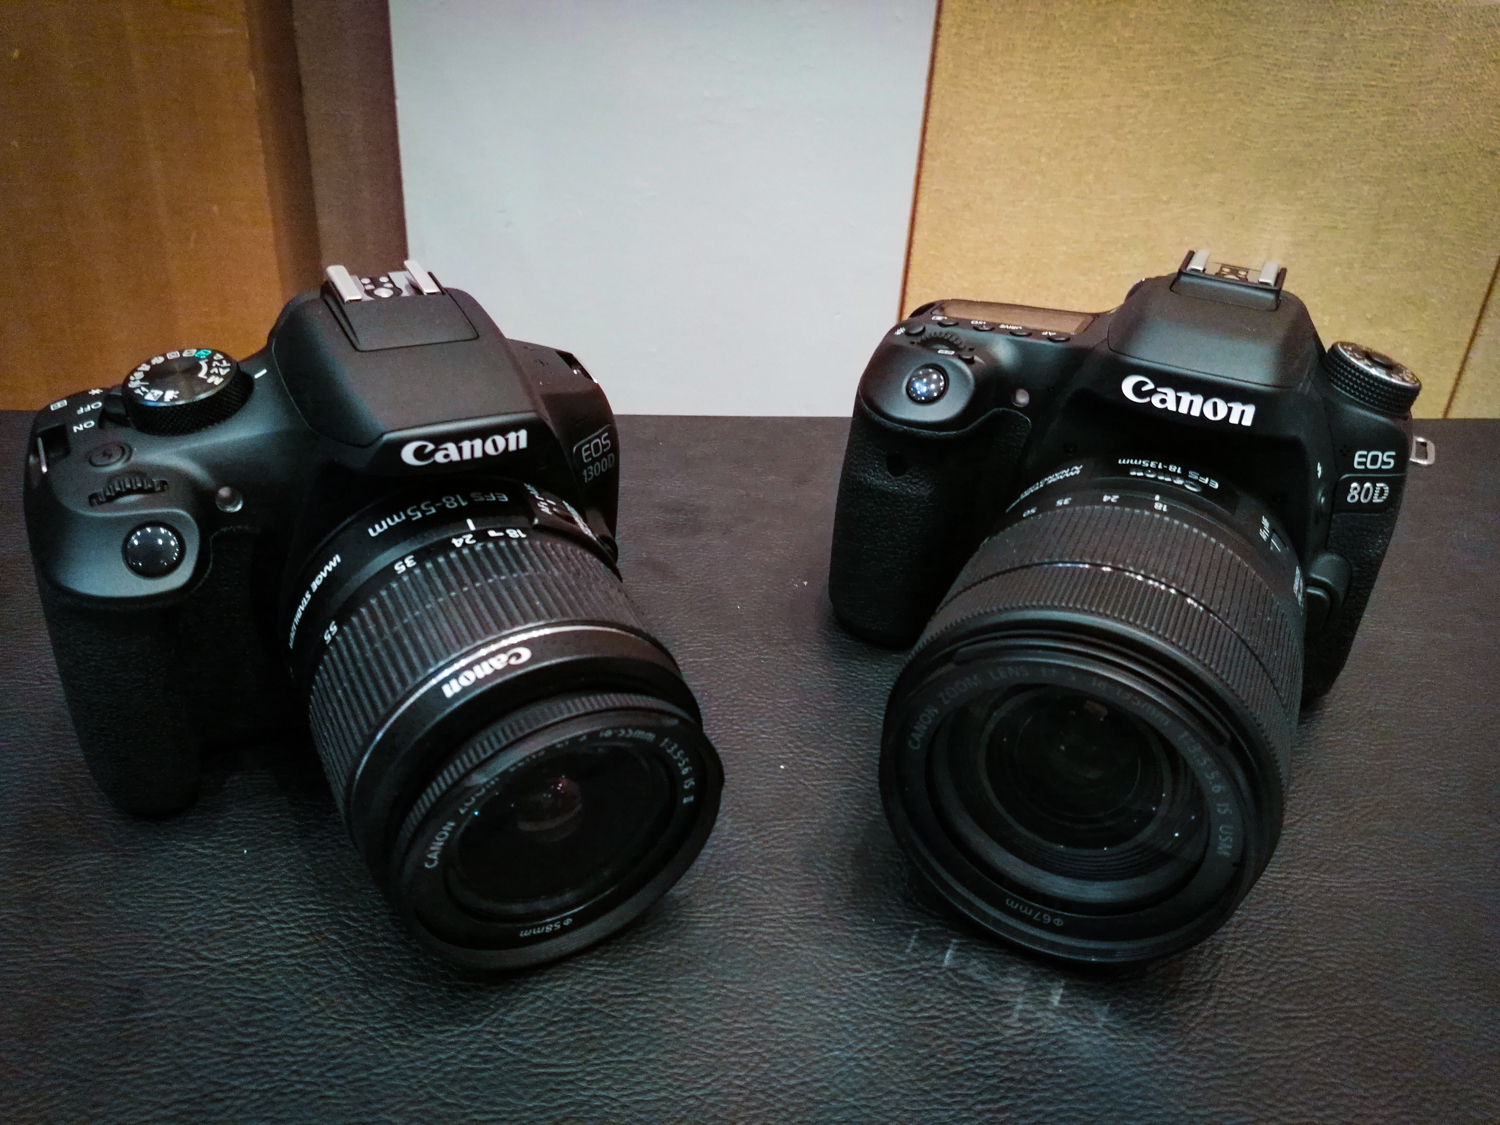 EOS 80D and 1300D